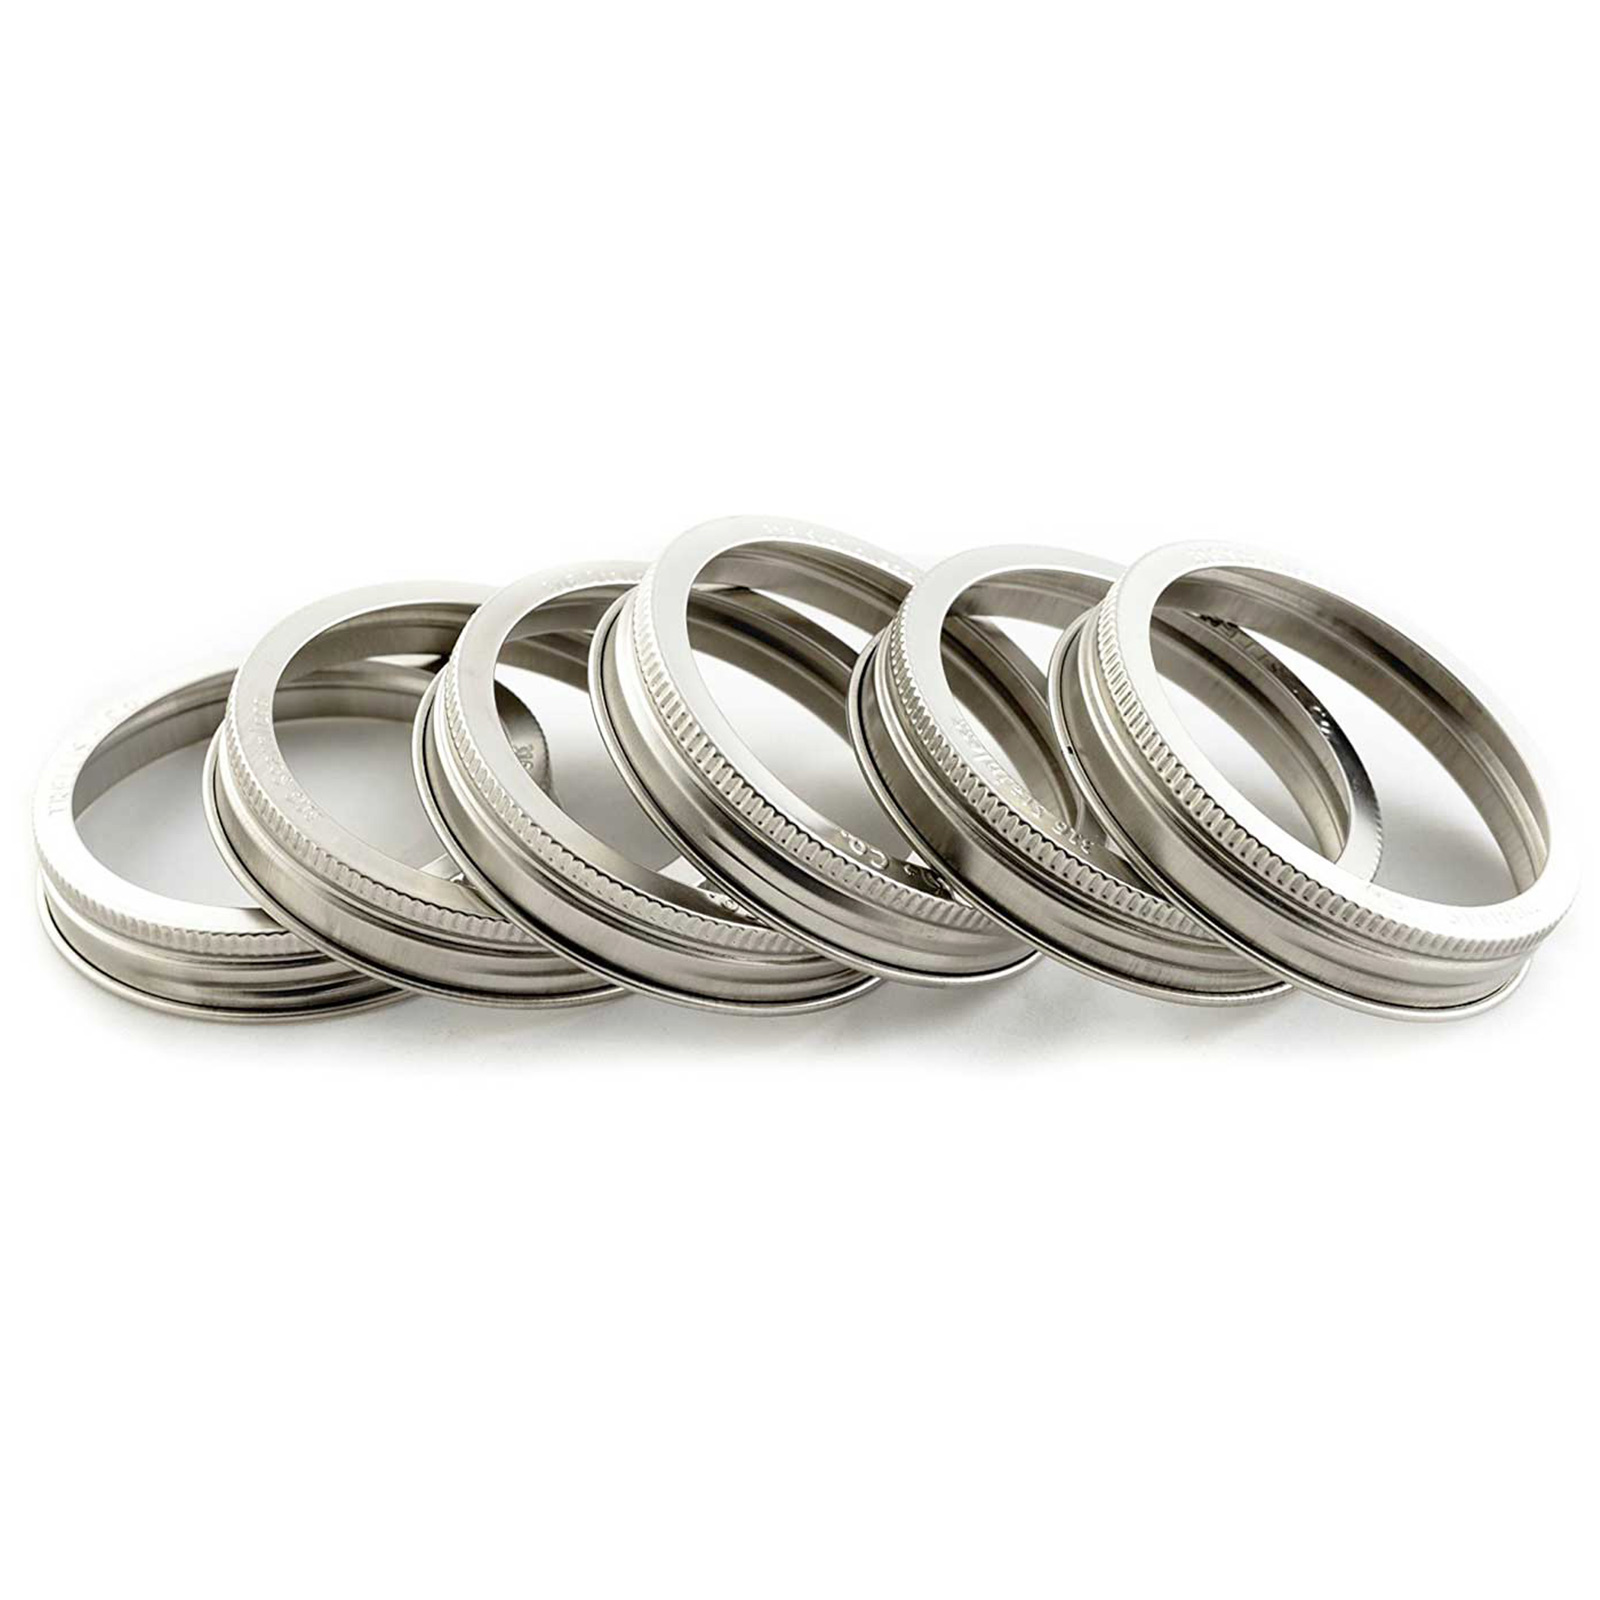 Stainless Steel Wide Mouth Mason Jar Replacement Rings / Bands - 6